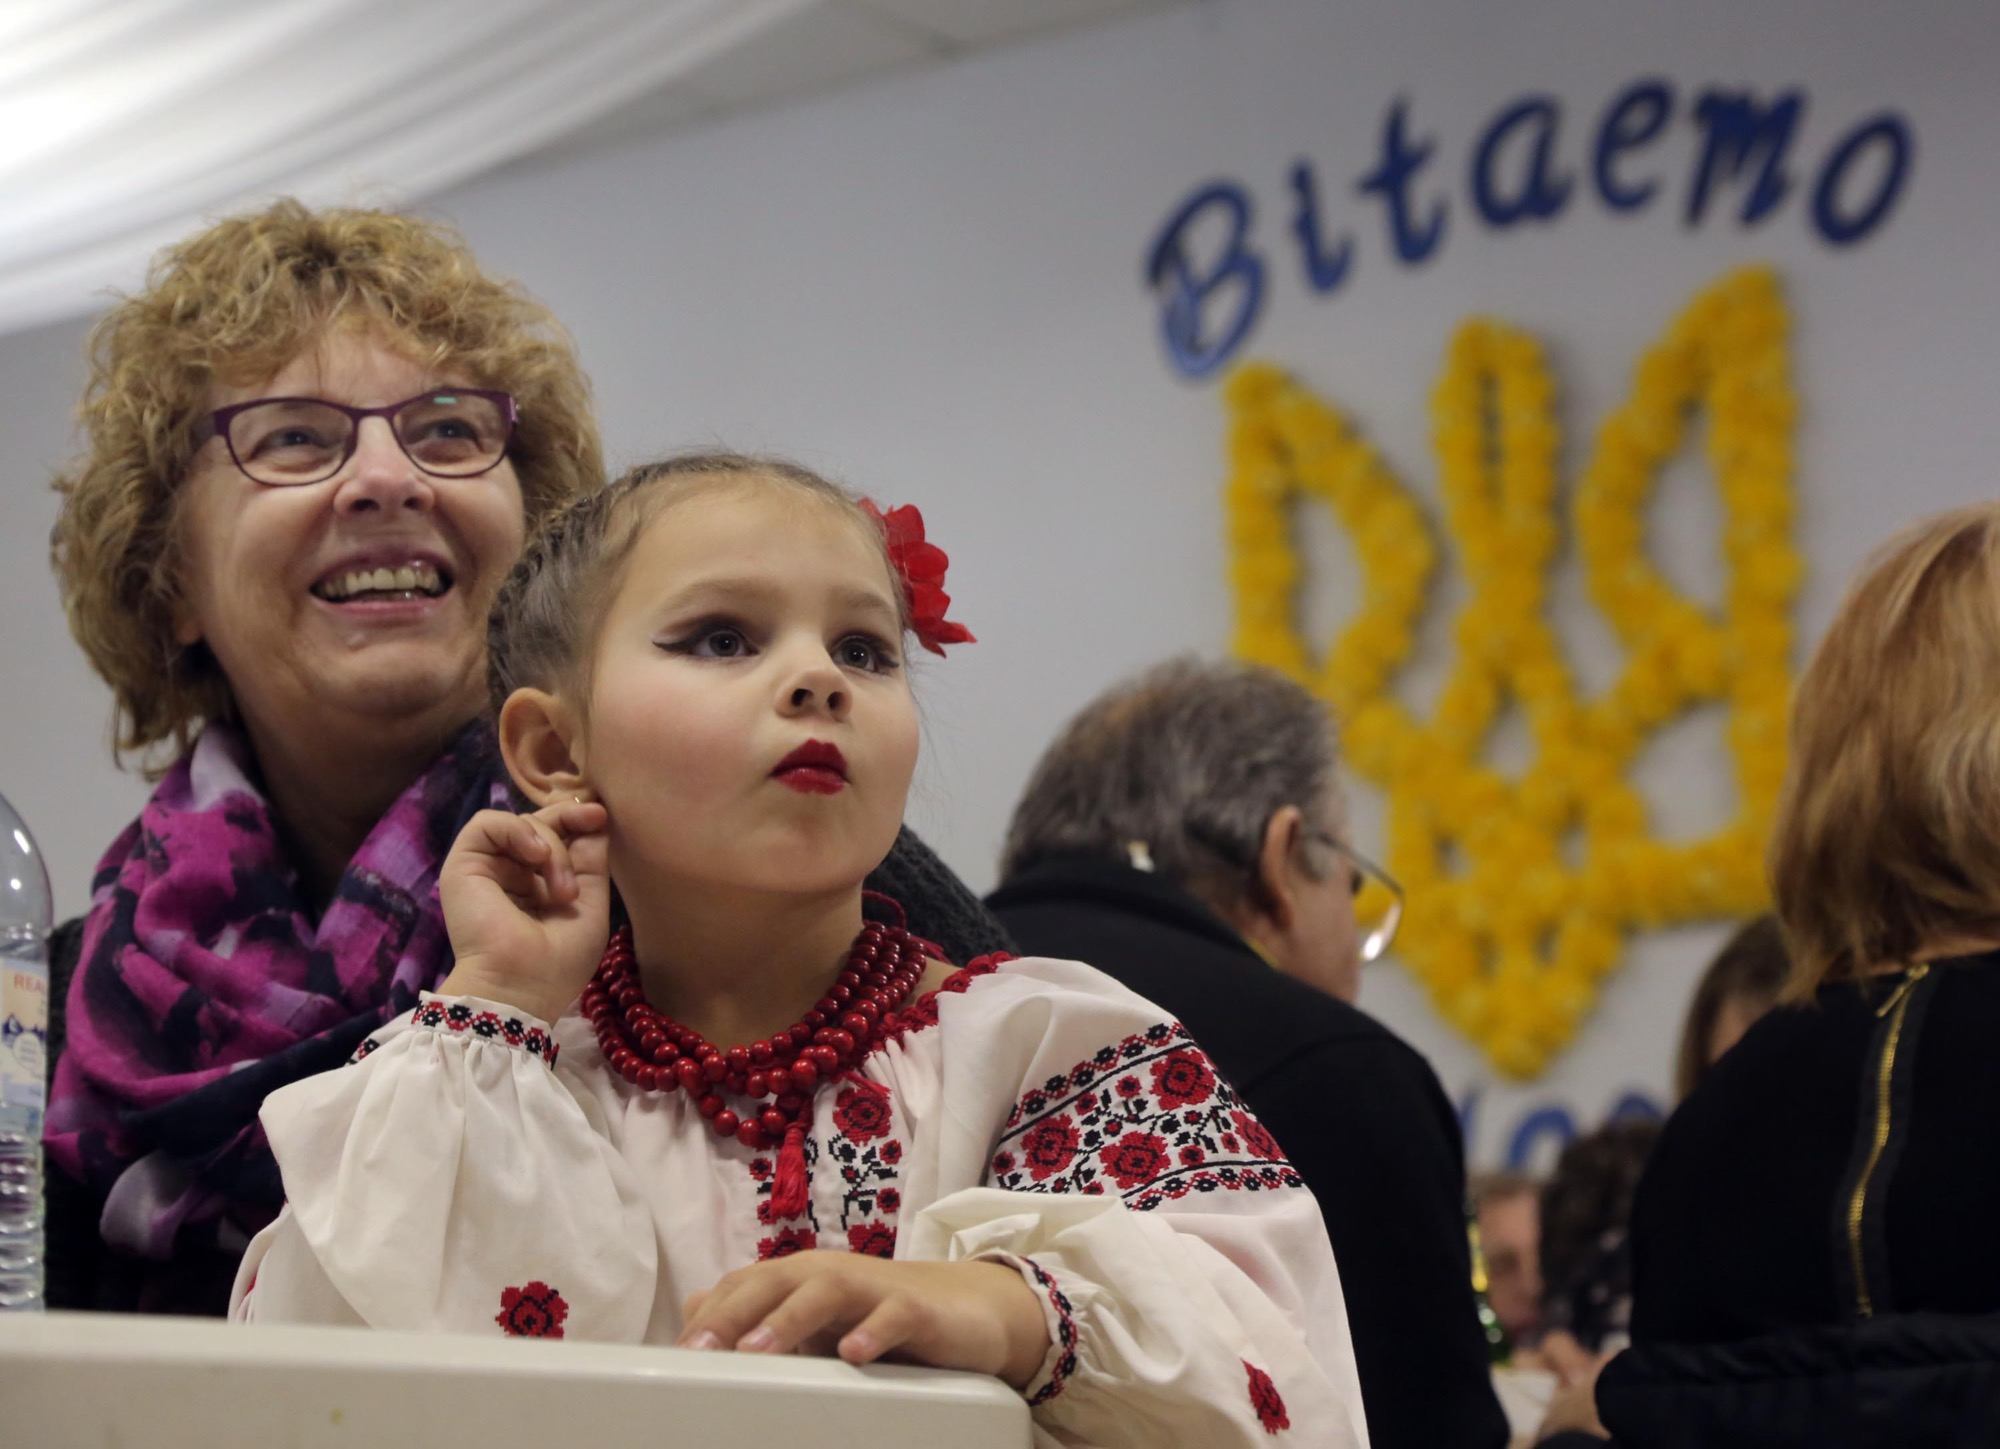 London Hrubeniuk and her baba Louise watch the opening acts at the Ukrainian pavilion during the opening night of the Westman Multicultural Festival on Thursday evening. The event runs through Saturday at seven venues throughout the city.